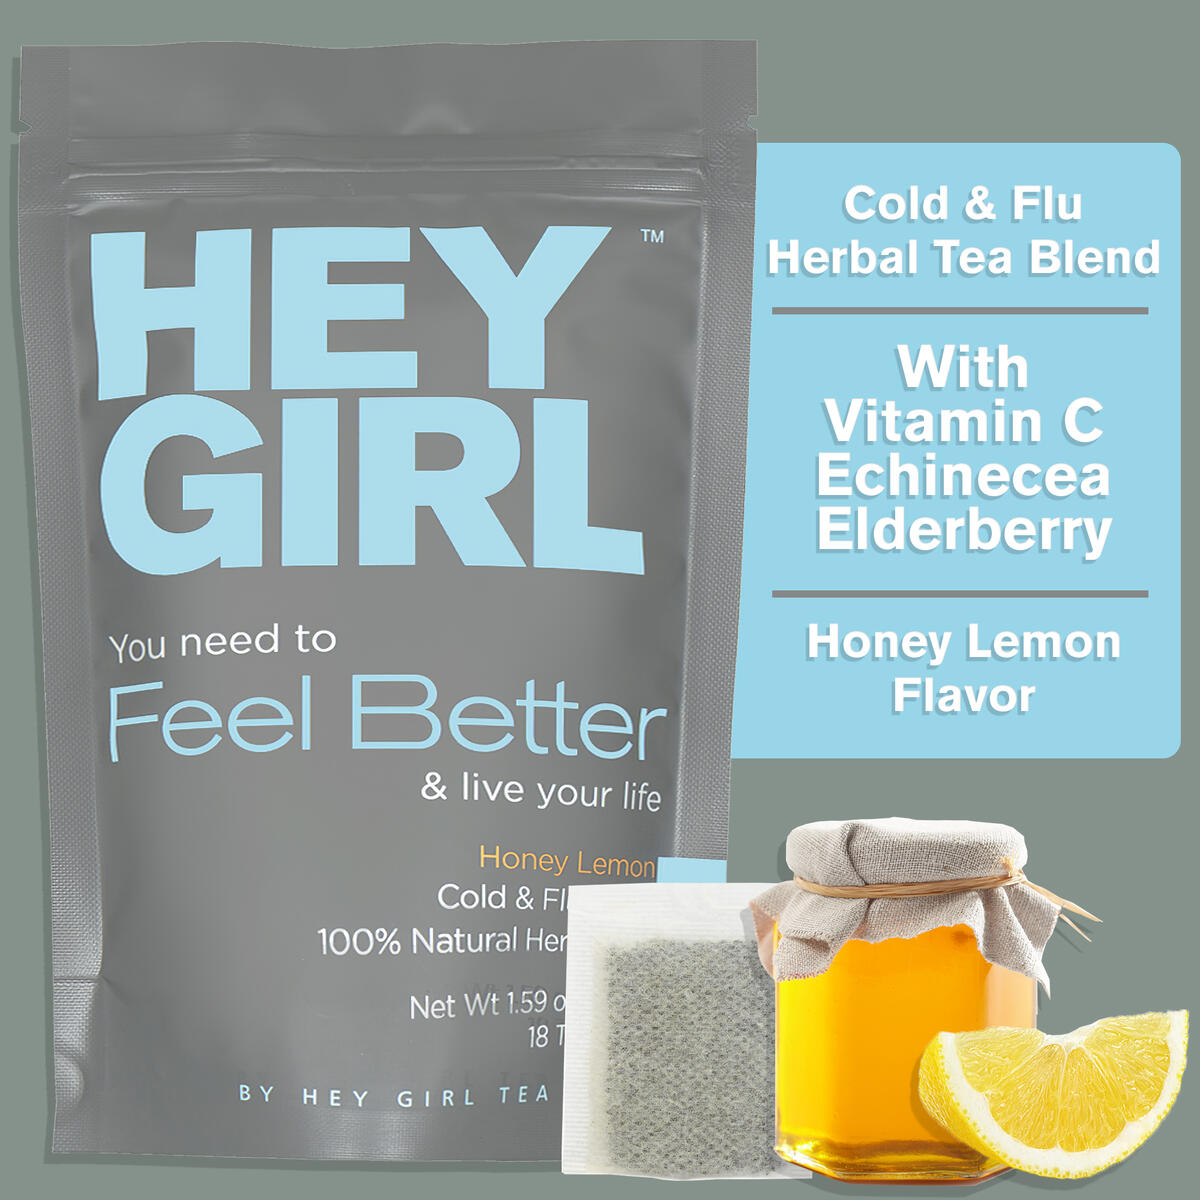 Feel Better Herbal Tea - Immune Support , Immune Booster w/ Echinacea , Elderberry , Vitamin C , Ginseng , Ginger | Thoughtful Gifts For Women